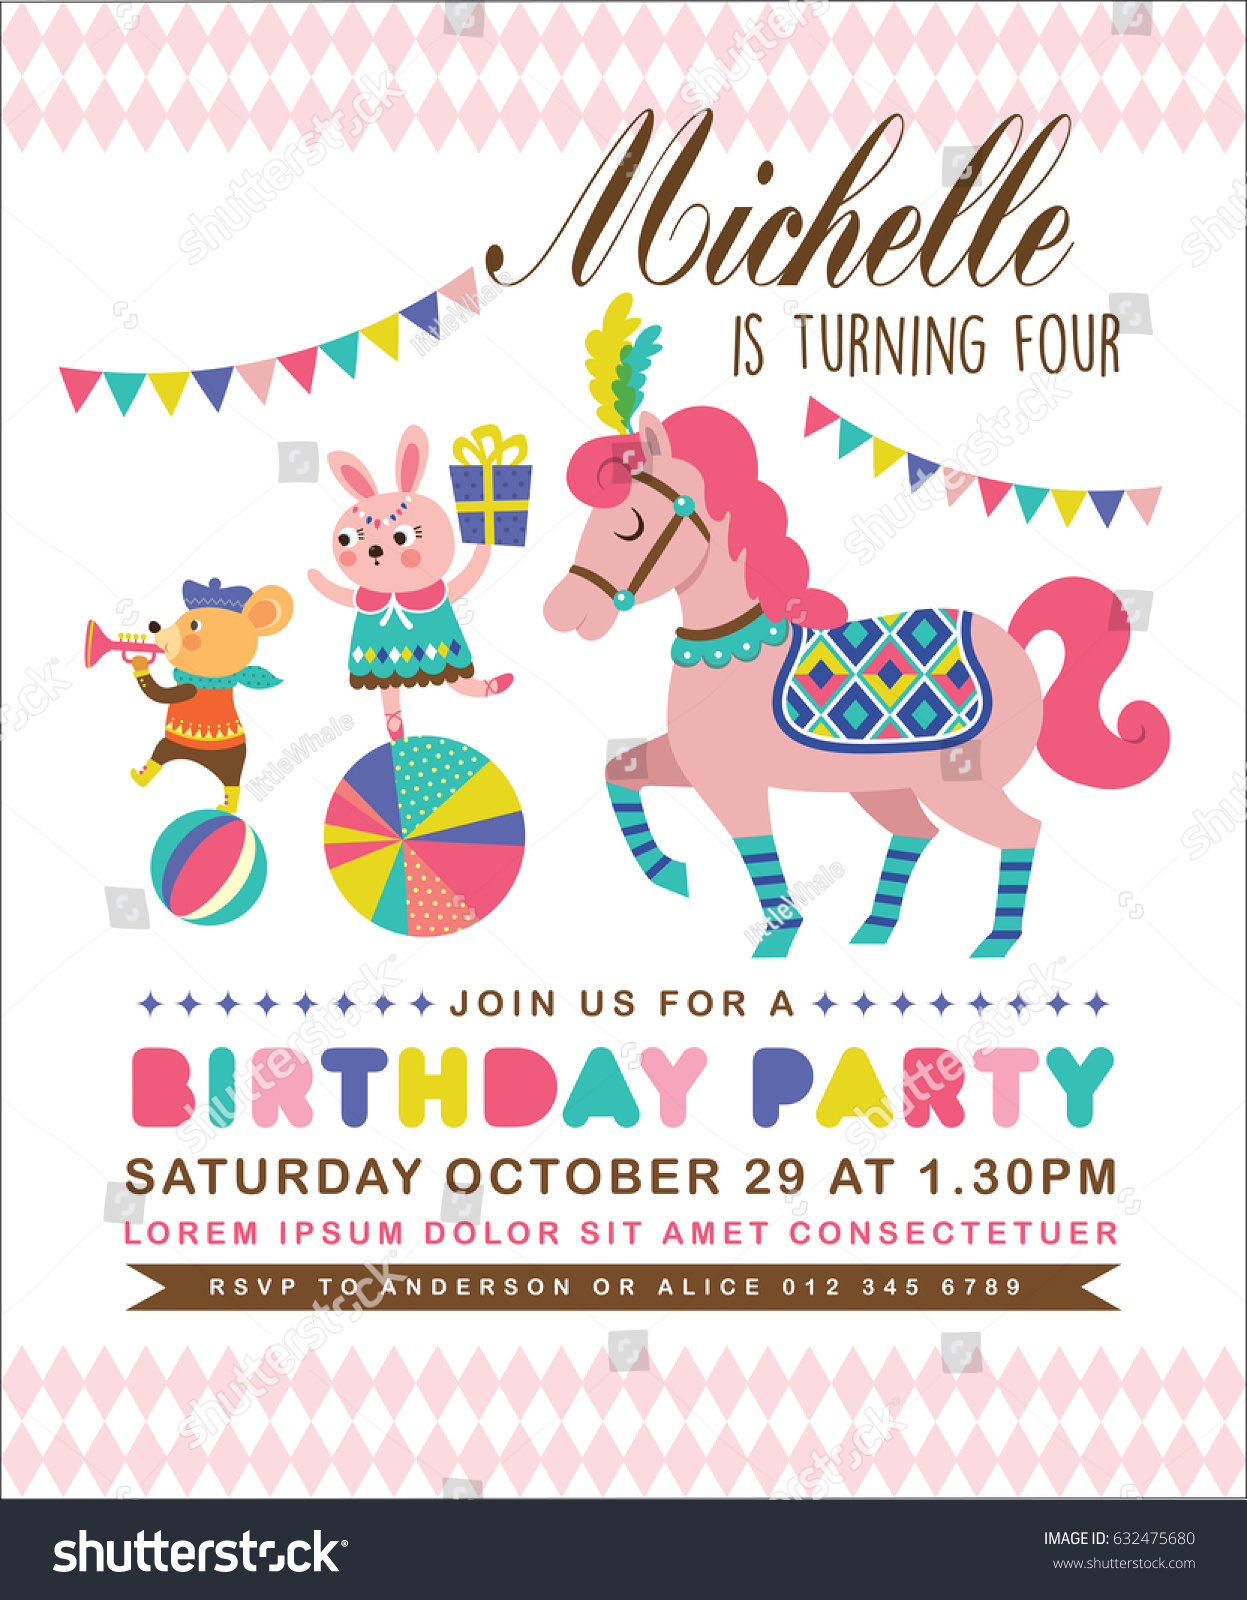 Kids Birthday Party Invitation Card Circus Stock Vector (Royalty ...